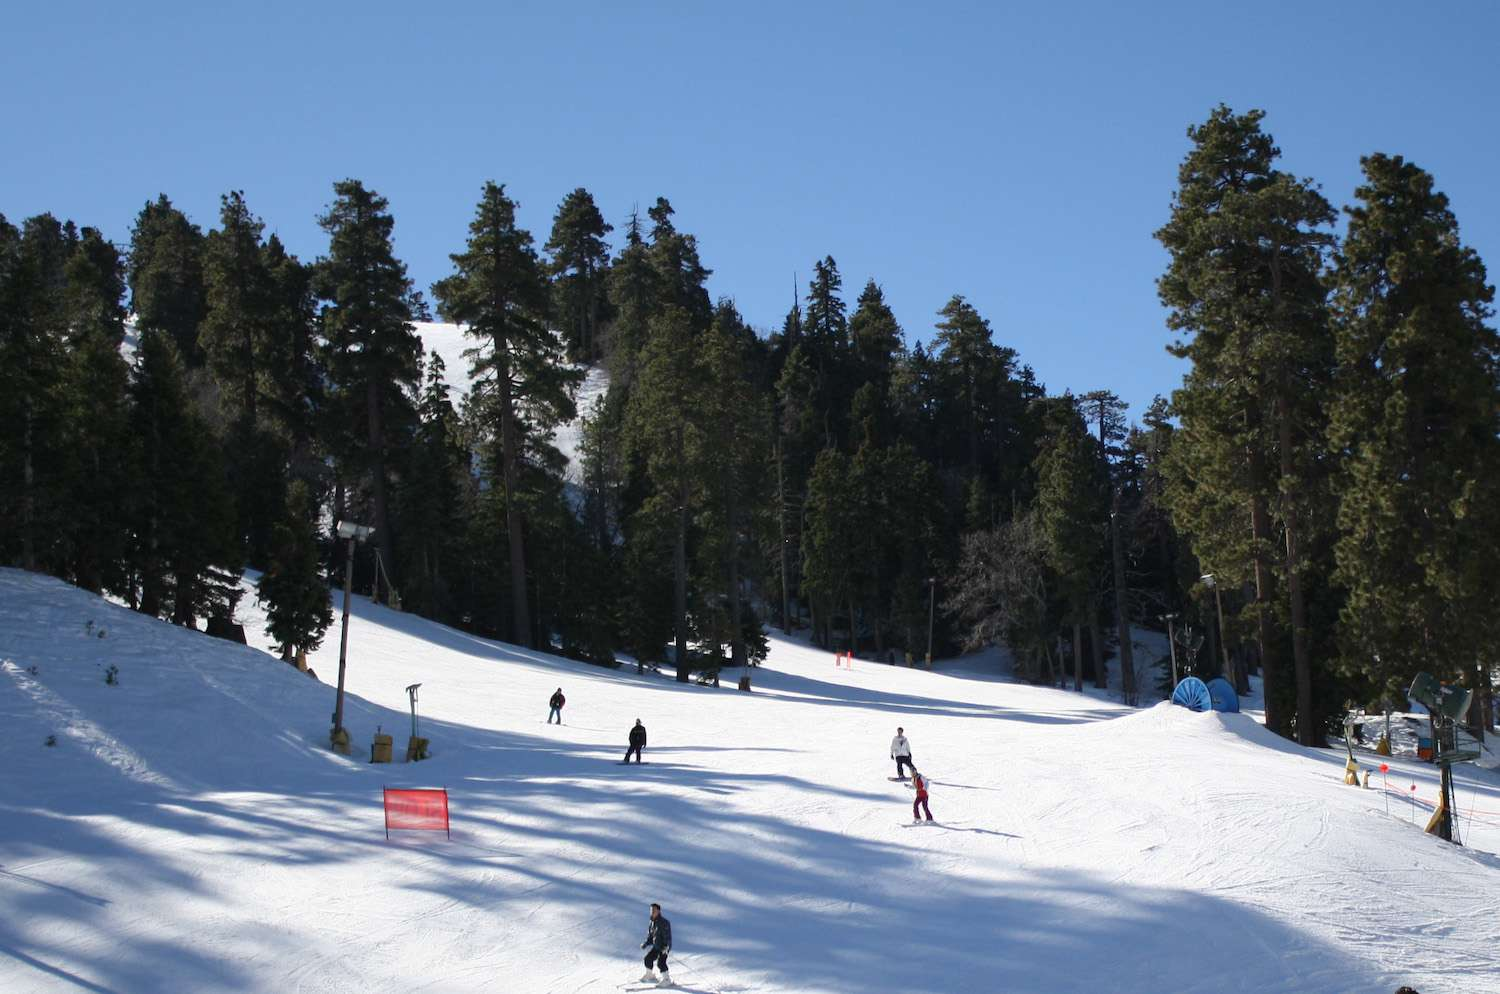 Skiers take to the evergreen-lined slopes of Mountain High